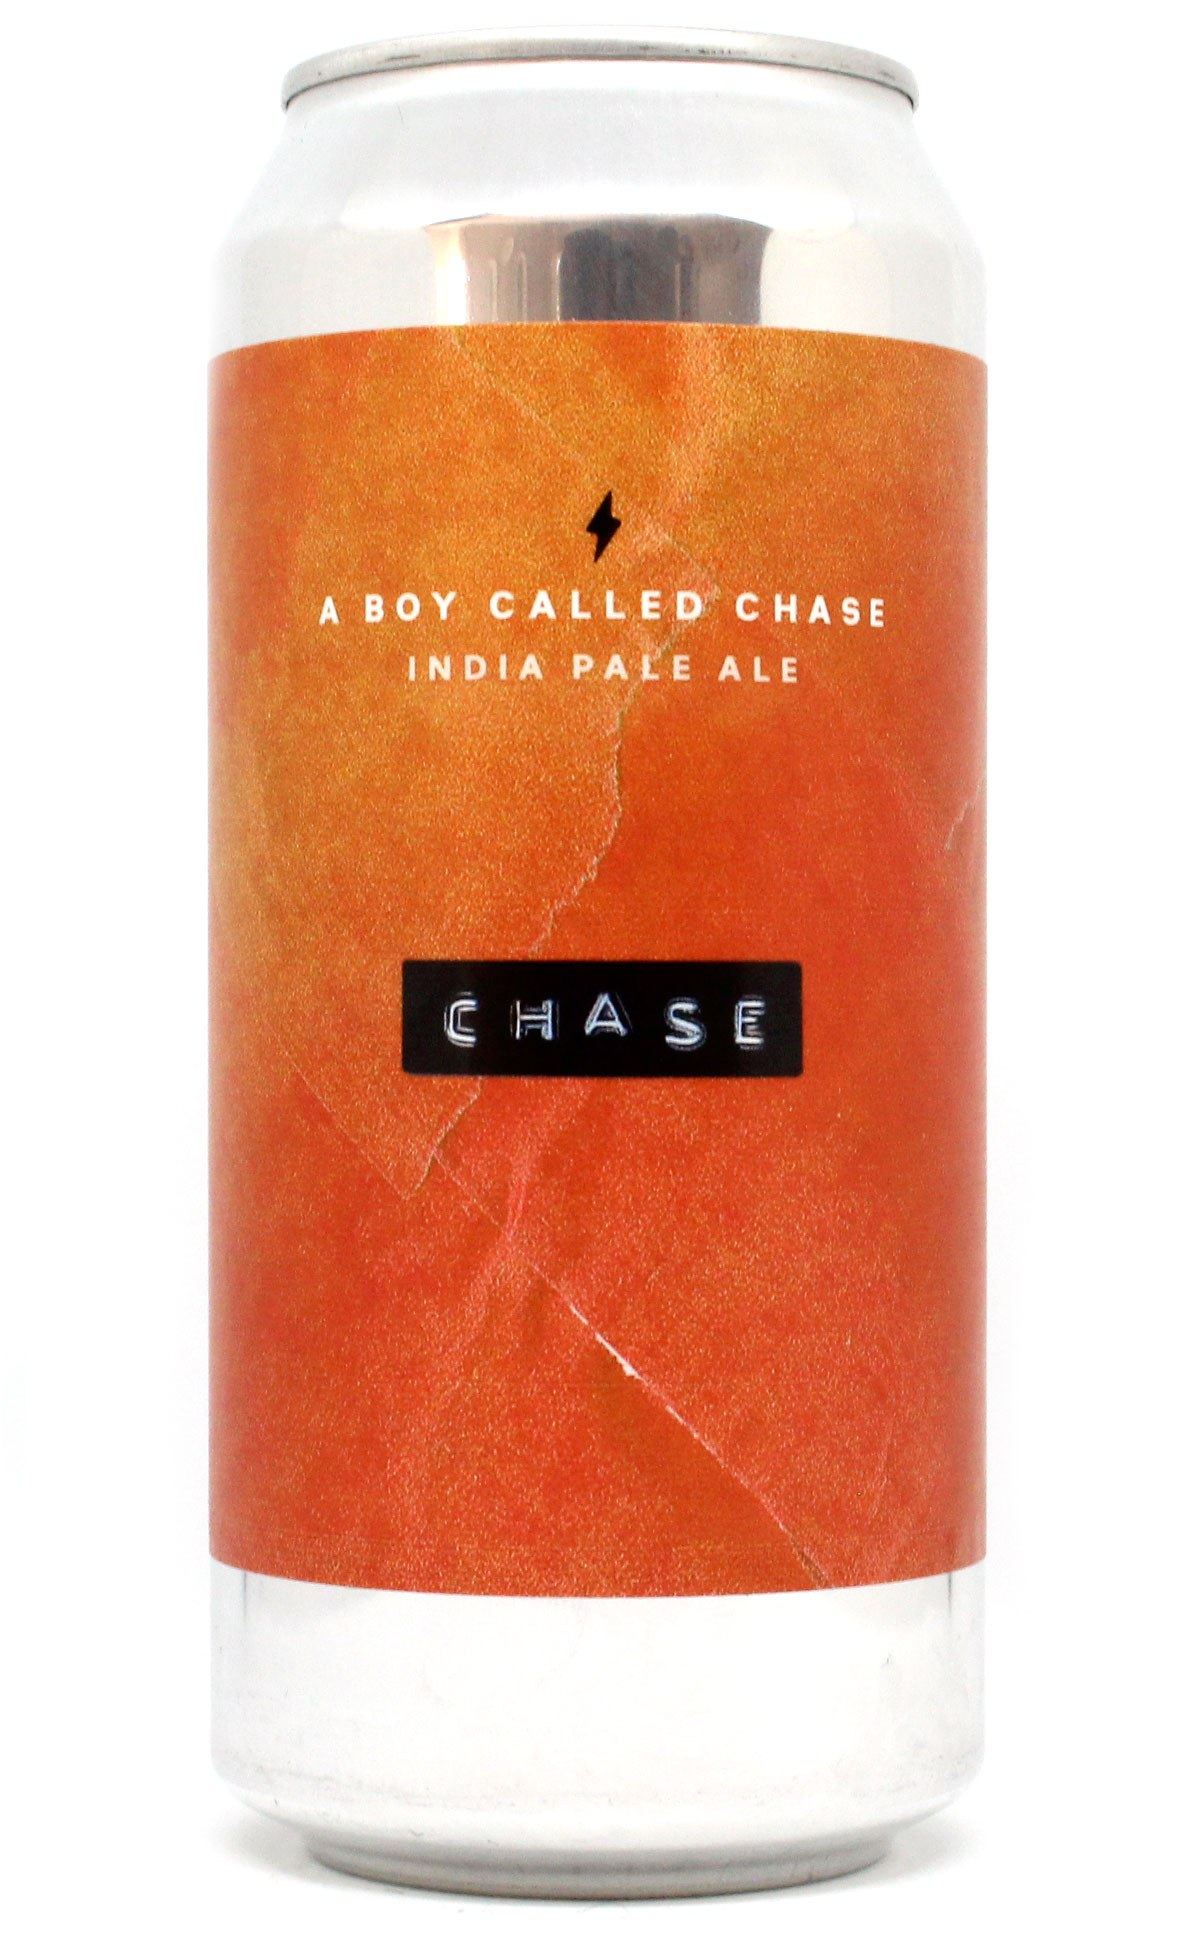 A Boy Called Chase